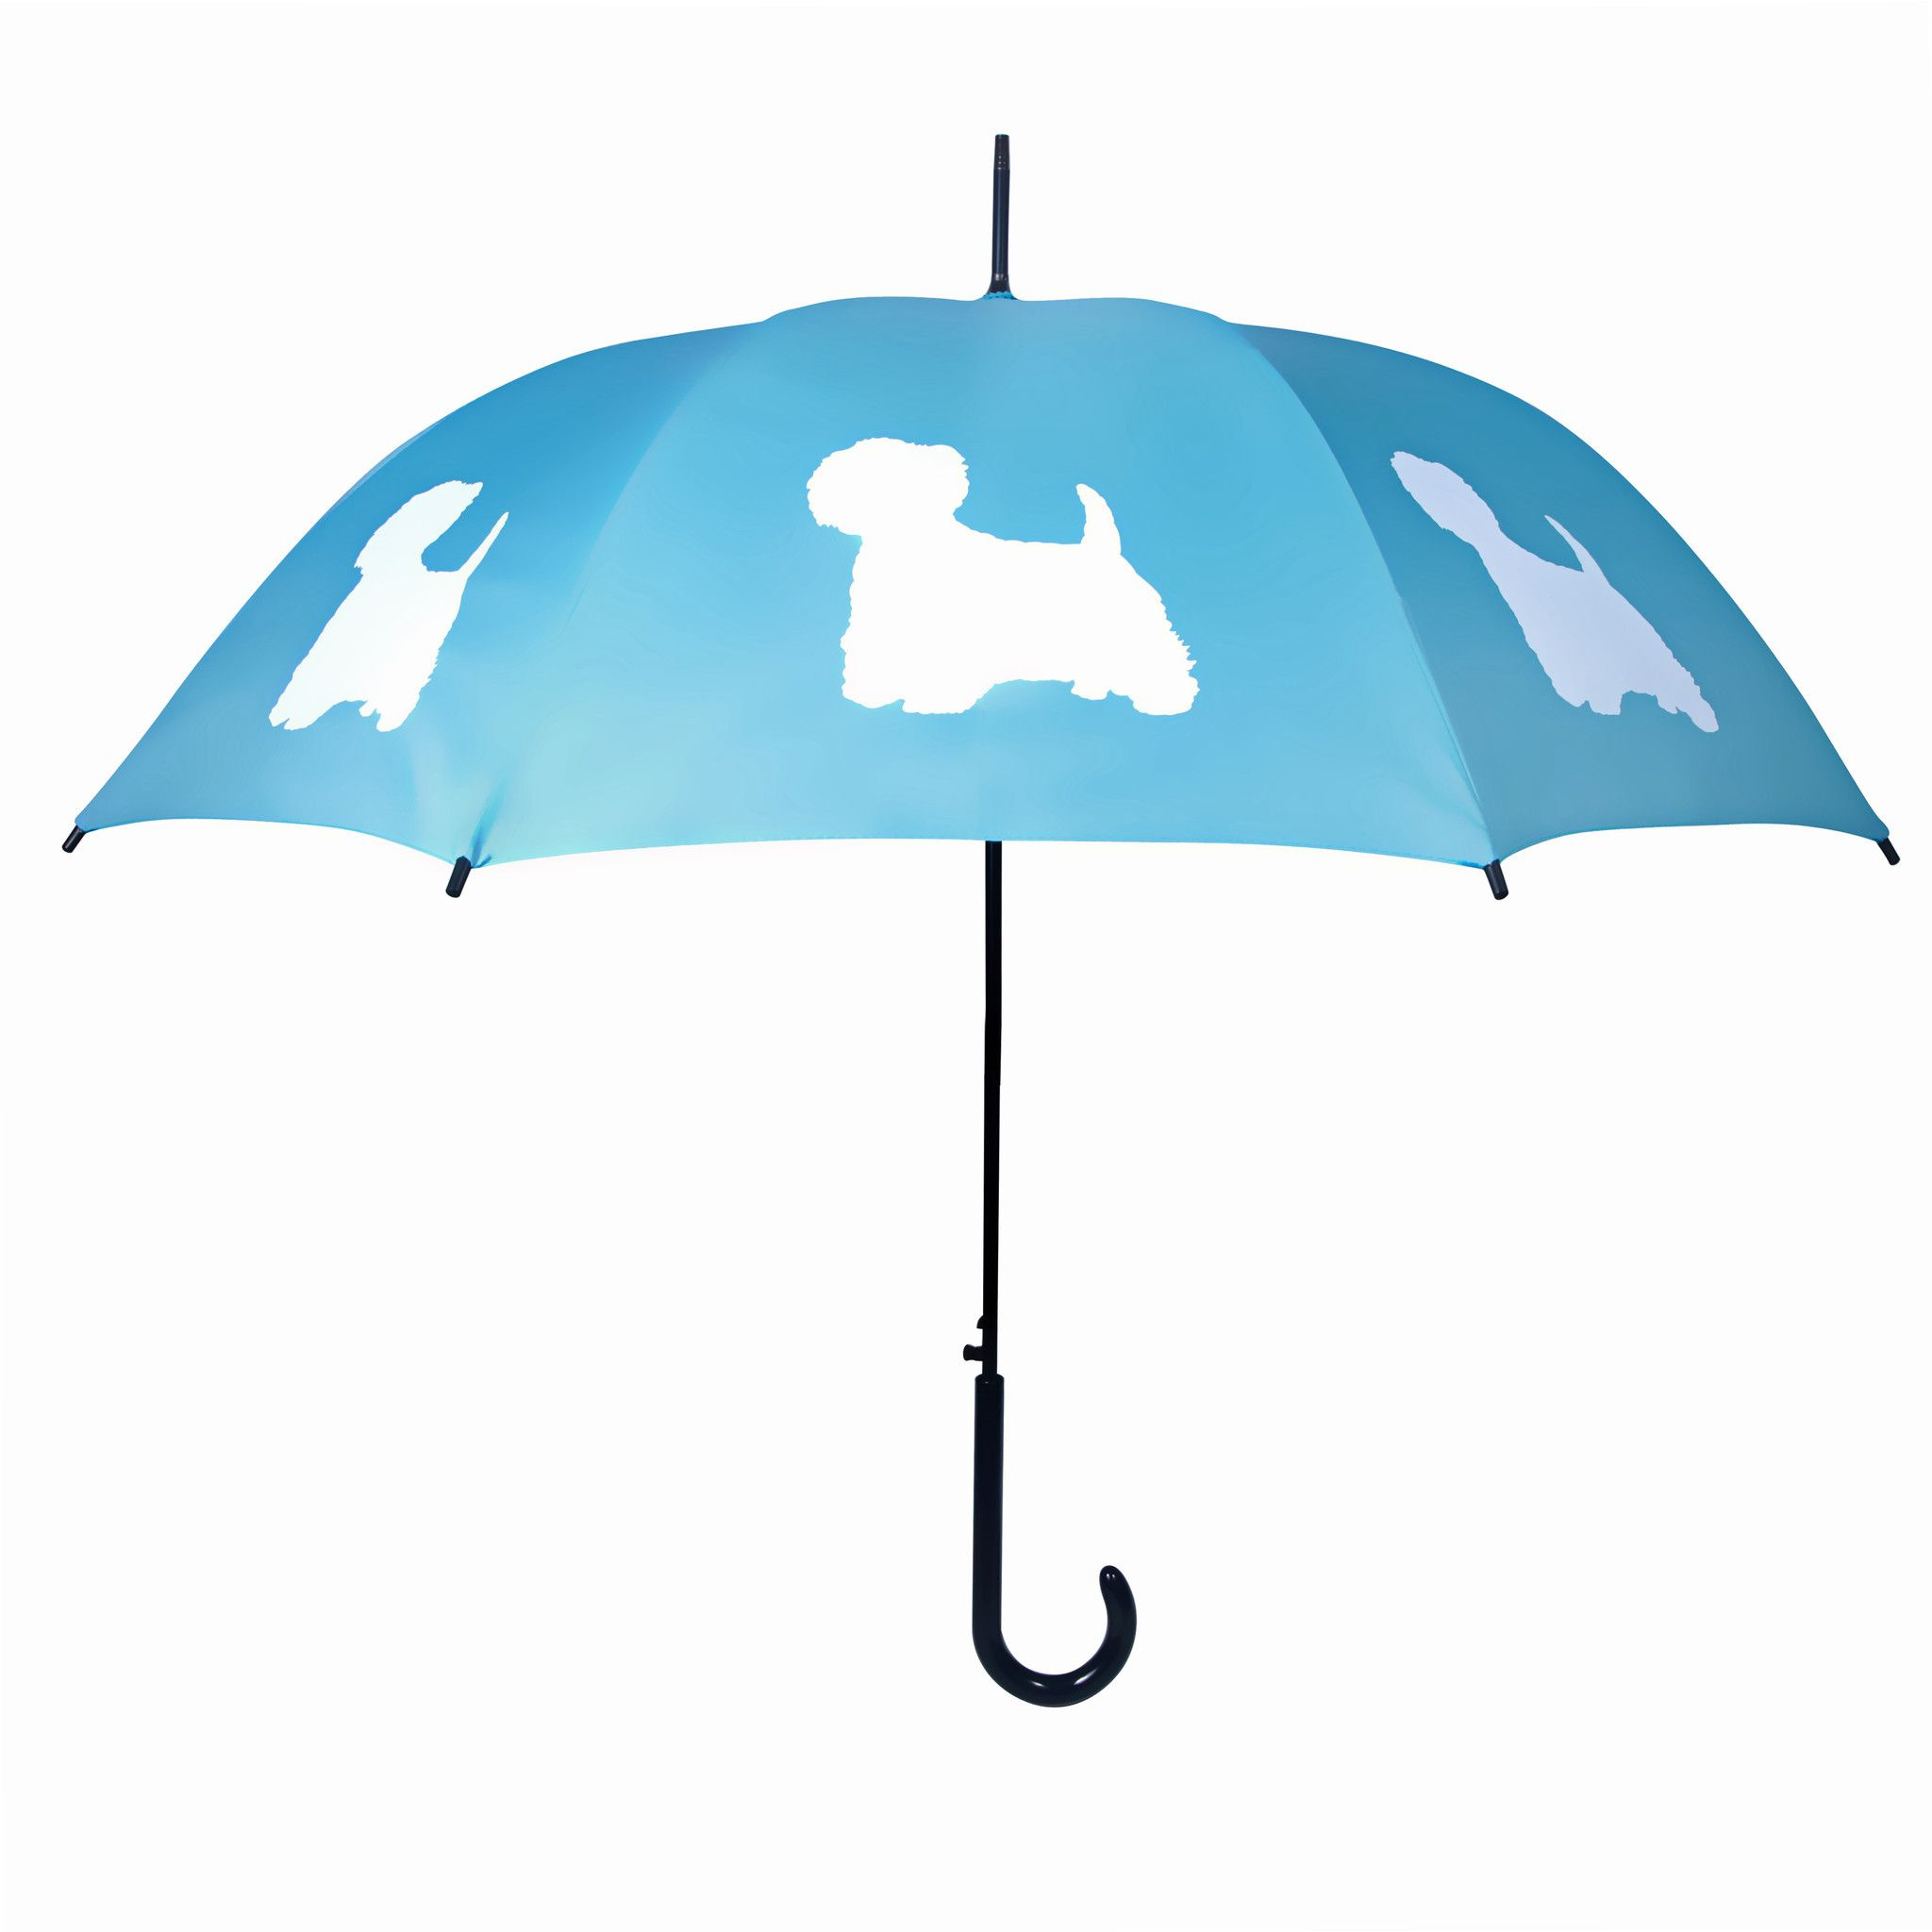 West Highland Terrier Umbrella (White on Powder Blue)